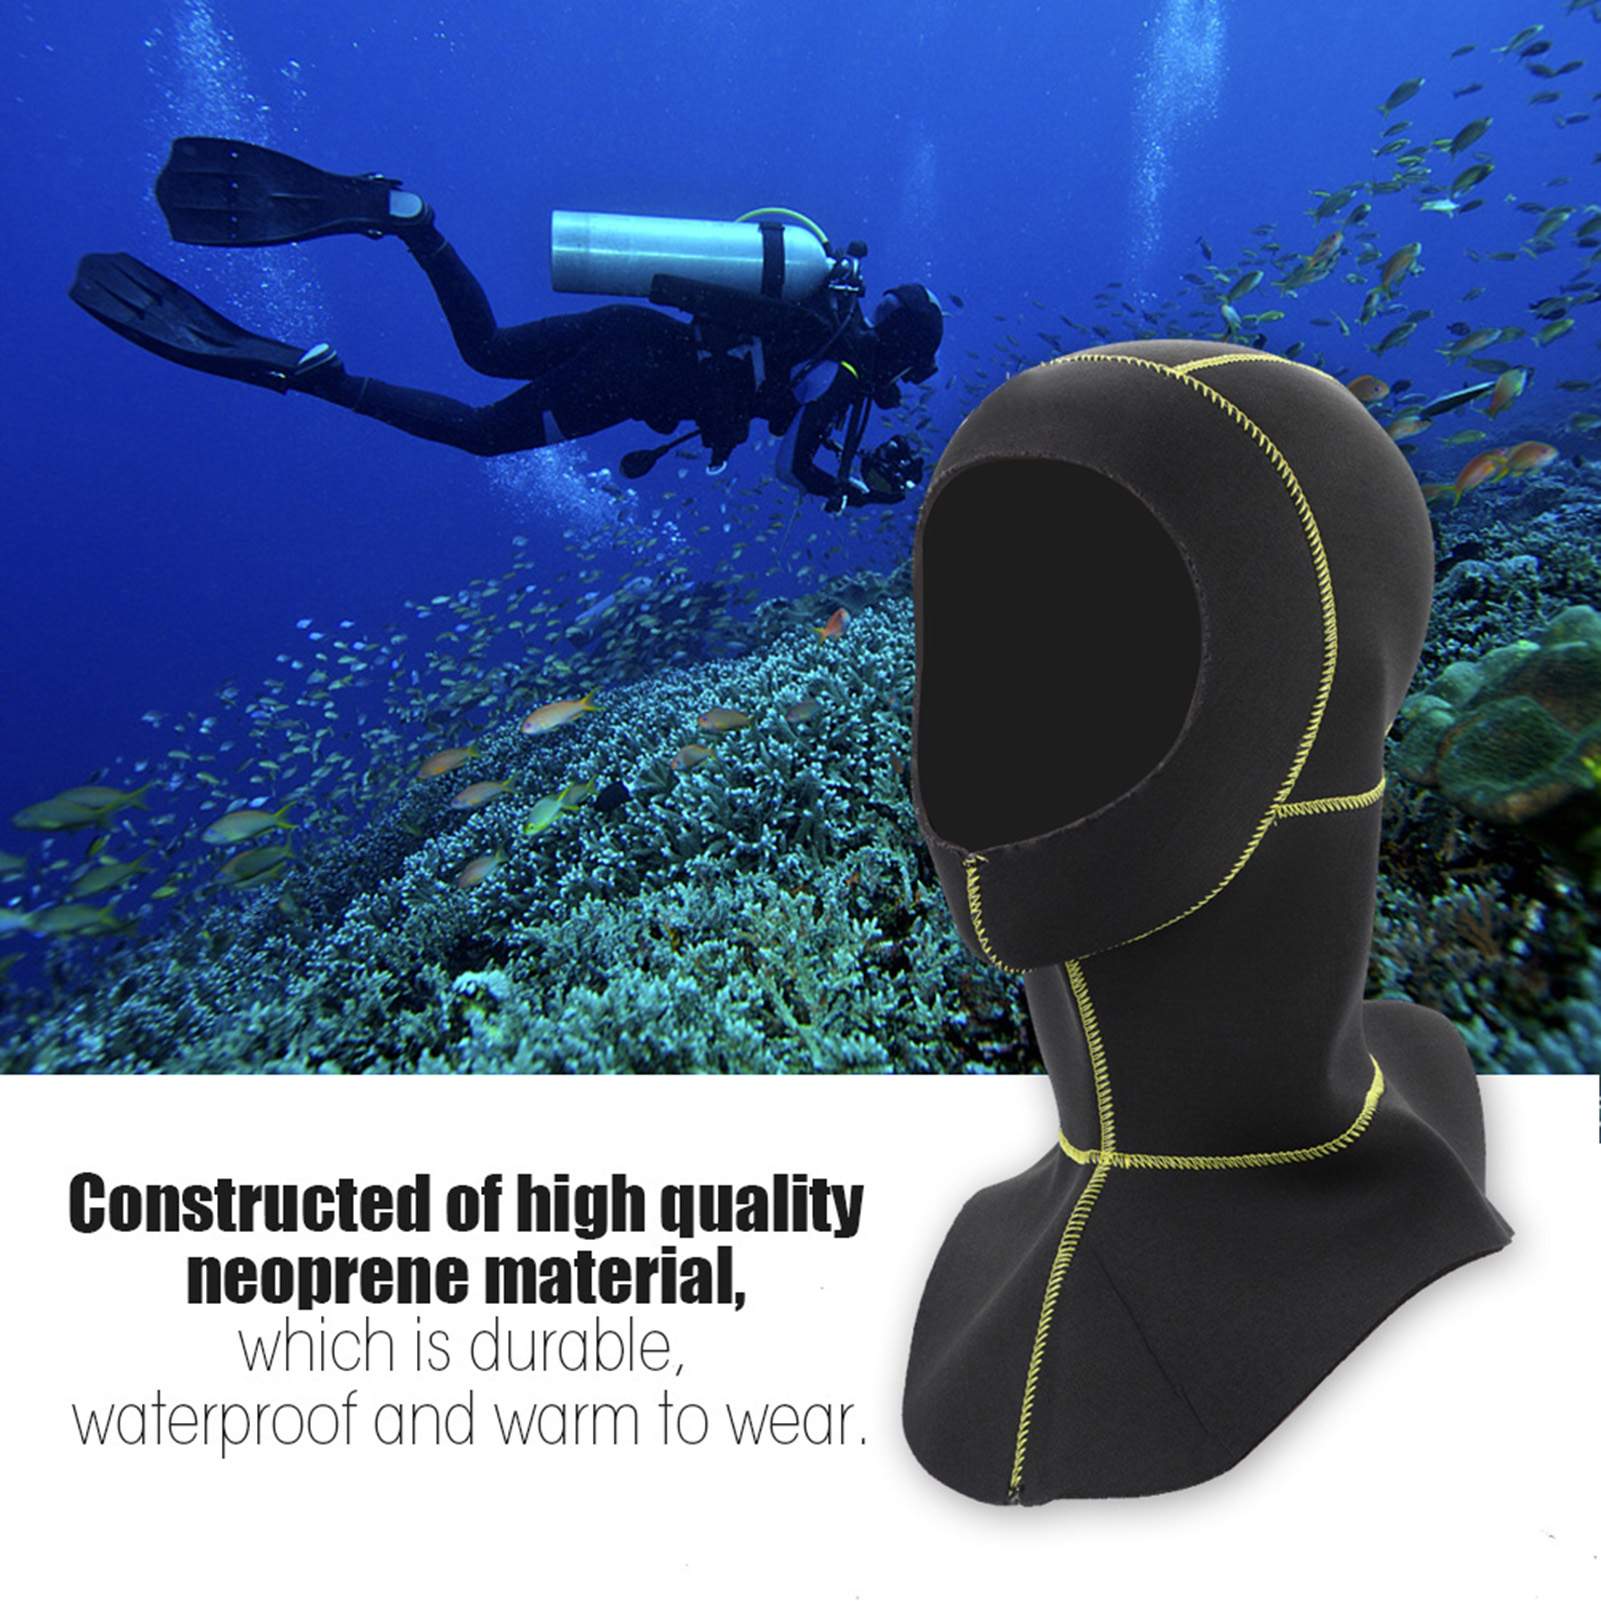 3mm-Neoprene-Scuba-Diving-Cap-Swimming-Warm-keeping-Wetsuit-Snorkeling-Hat-Hood thumbnail 21